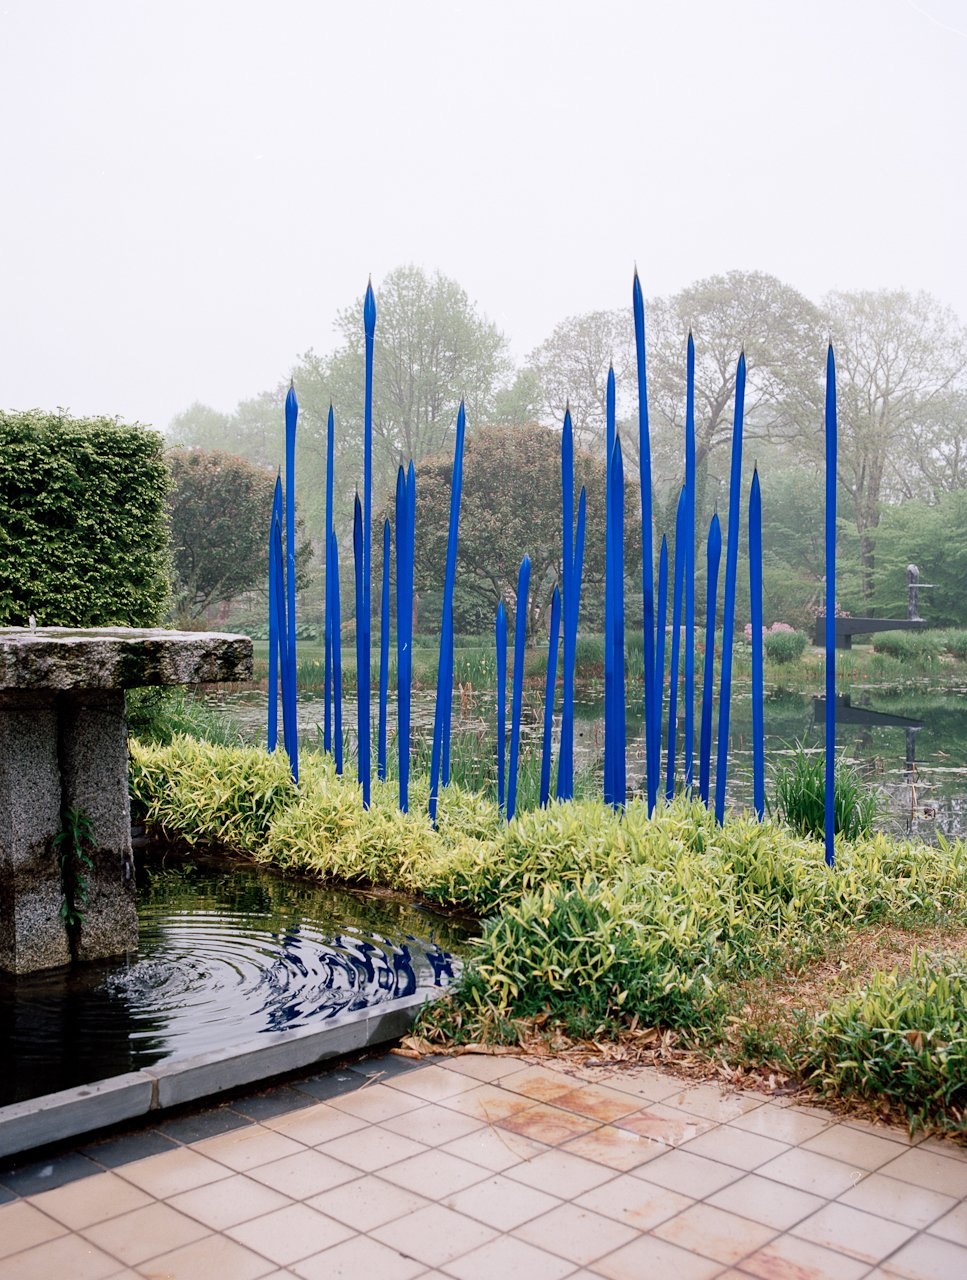 """Cobalt glass spears by Seattle artist Dale Chihuly reside in the pond beside the main house. Larsen is both friend and patron to Chihuly, and the two were introduced when the latter was studying interior architecture and weaving. Larsen recalls in his memoir, """"When we met, [Chihuly] was heating strips of glass sufficiently to bend them over and under to form an interlaced plane. I suggested he learn glassblowing with Harvey Littleton, the father of modern glass, who had been a prolific potter when I was at Cranbrook."""" Chihuly then went to Madison, Wisconsin, to study under Littleton, and he then started a school in the Northwest with $2,000 in prize money—now Pilchuck Glass School.  Photo 11 of 12 in Q&A with Textile Designer Jack Lenor Larsen"""